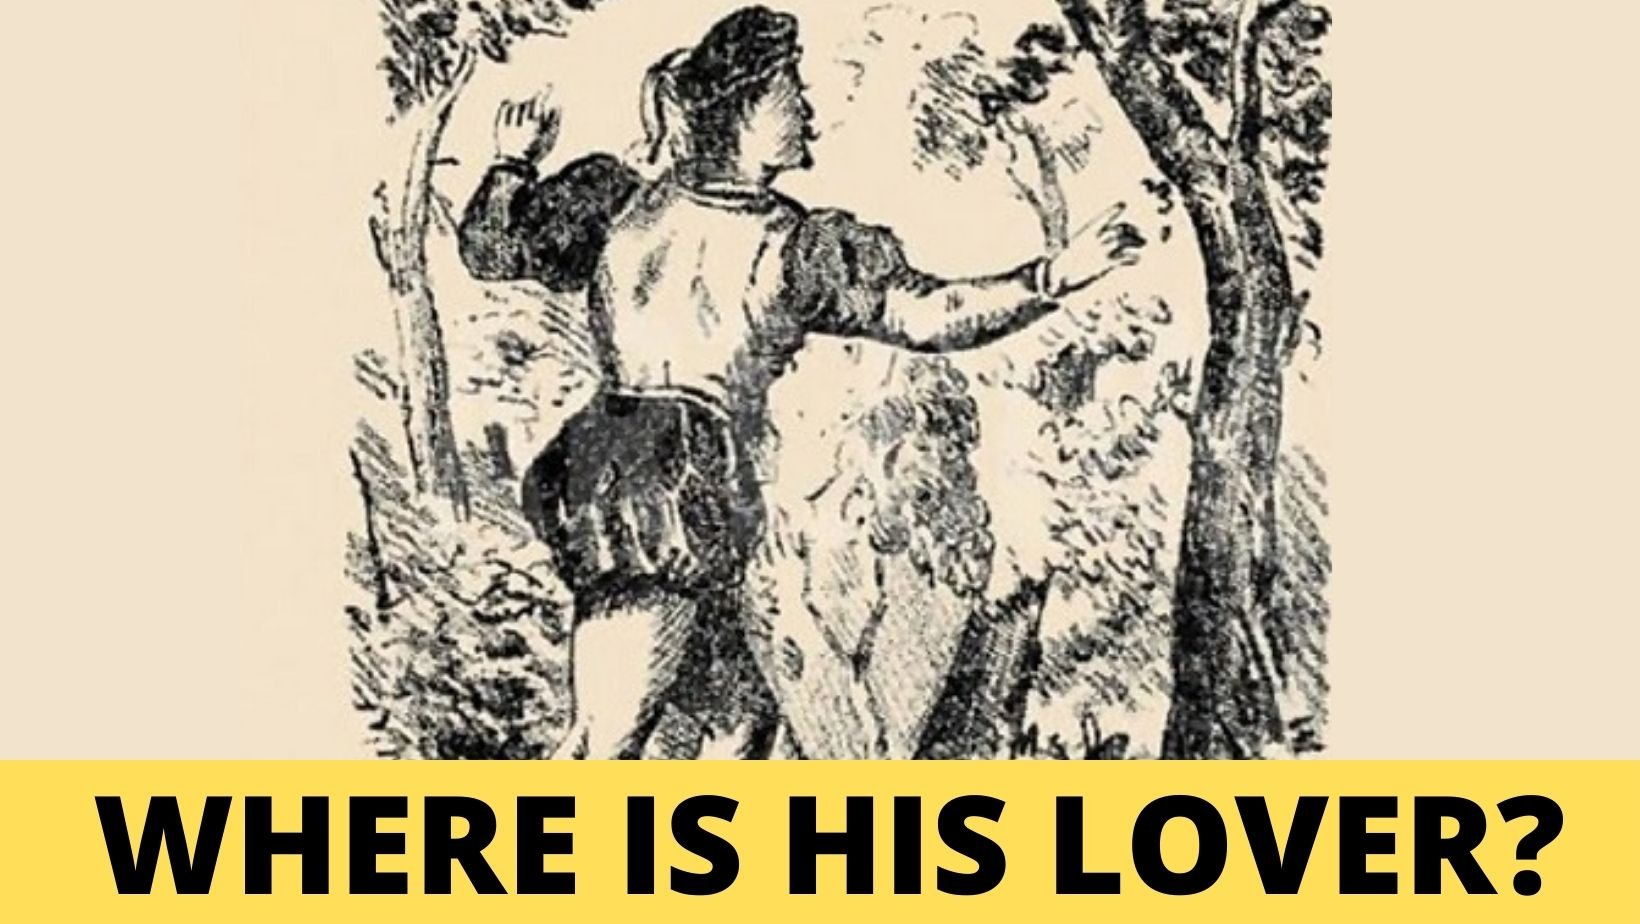 small joys thumbnail.jpg?resize=412,232 - A Man Is Desperately Looking For His Lover, Can You SEE her?